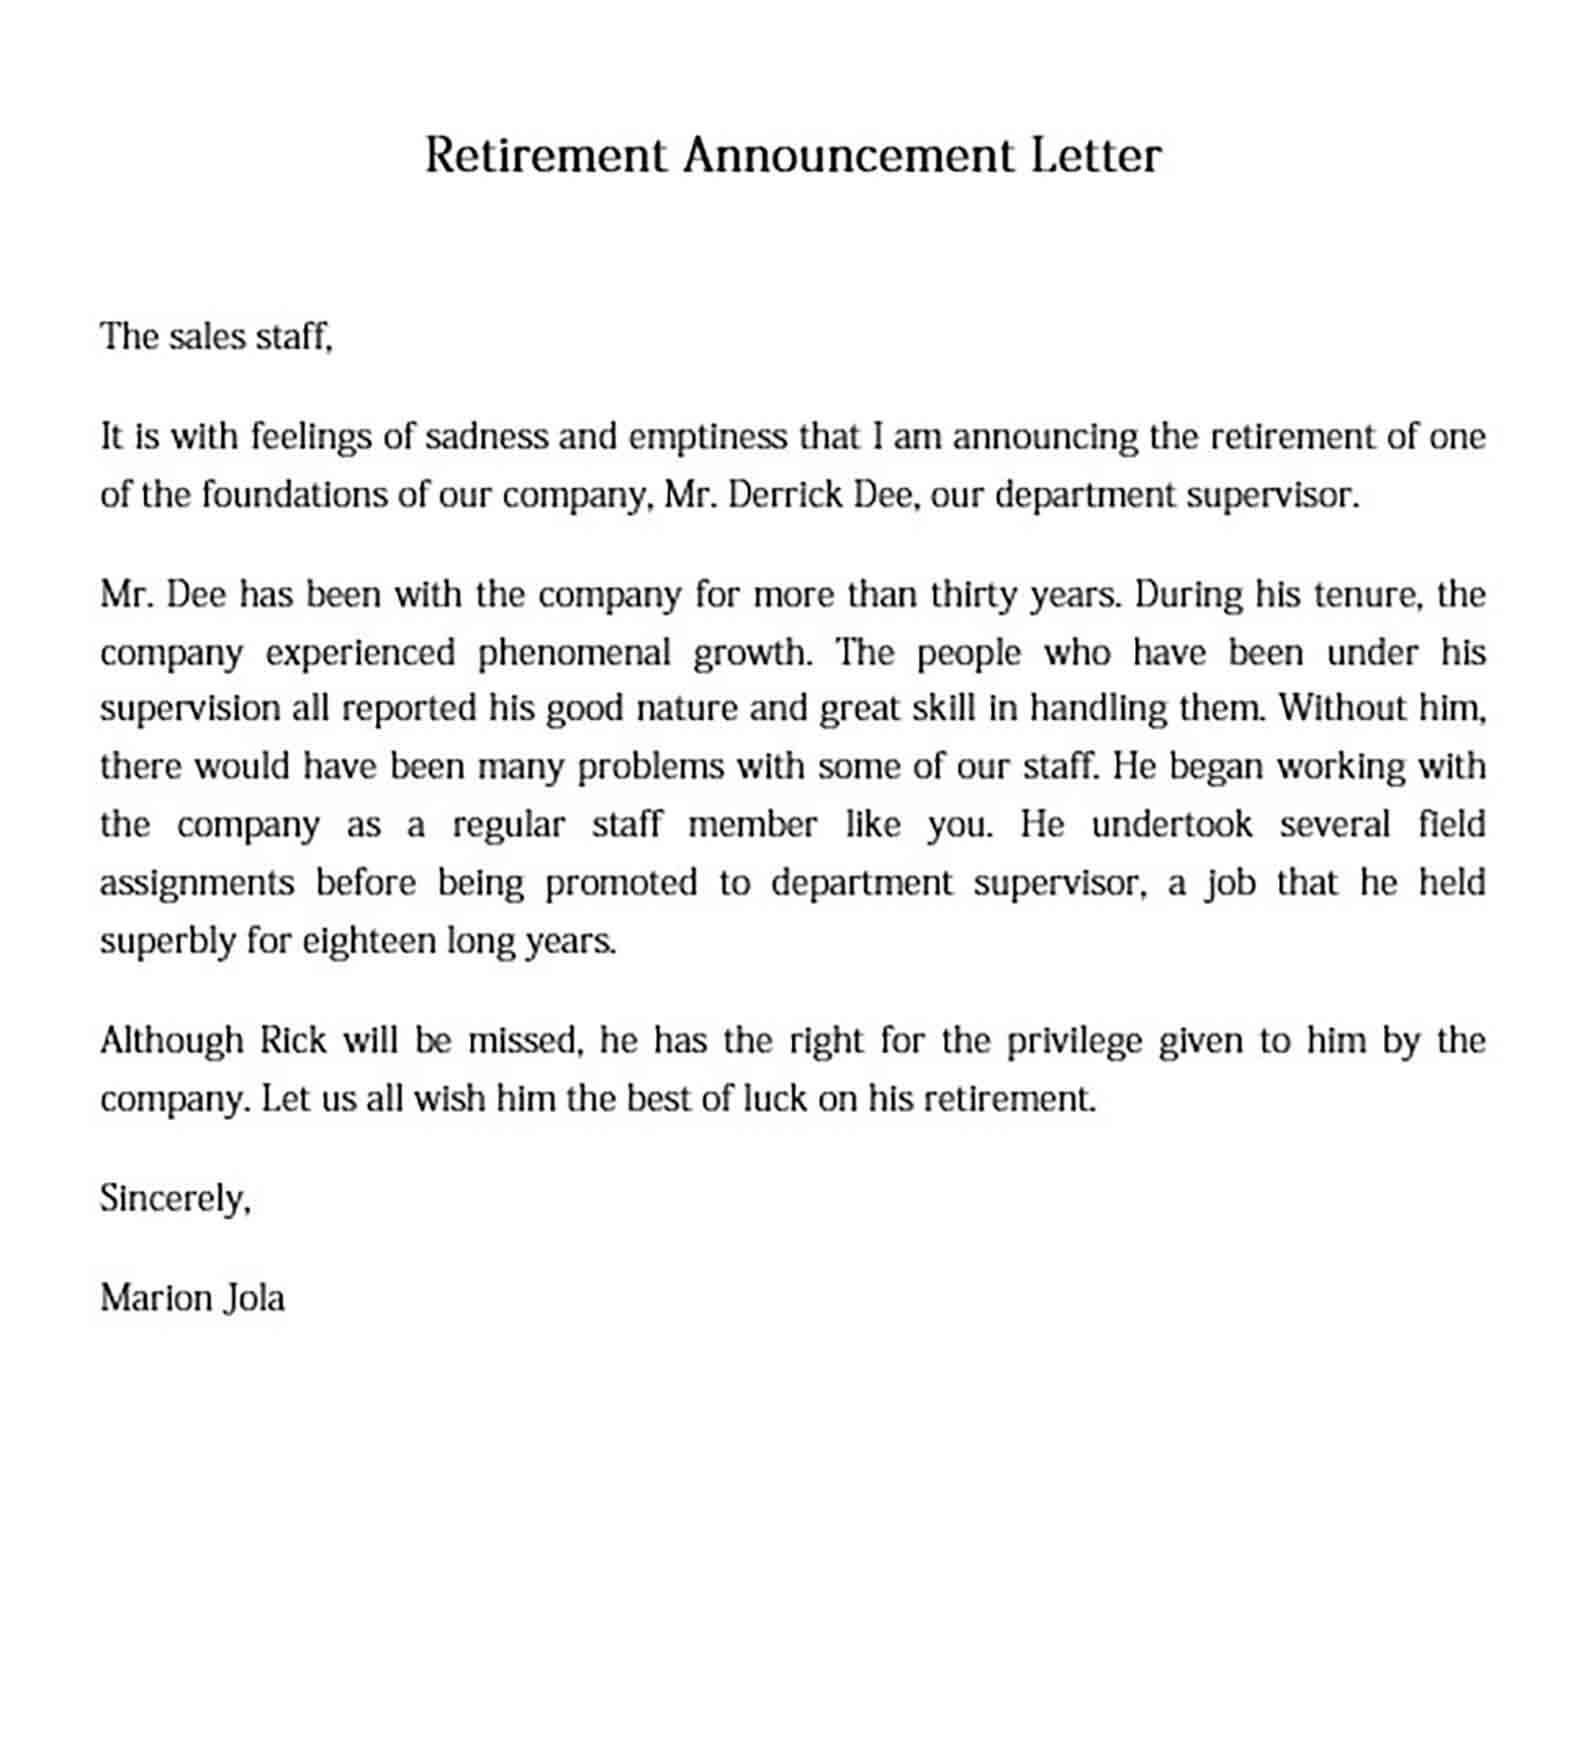 Retirement Announcement Letter